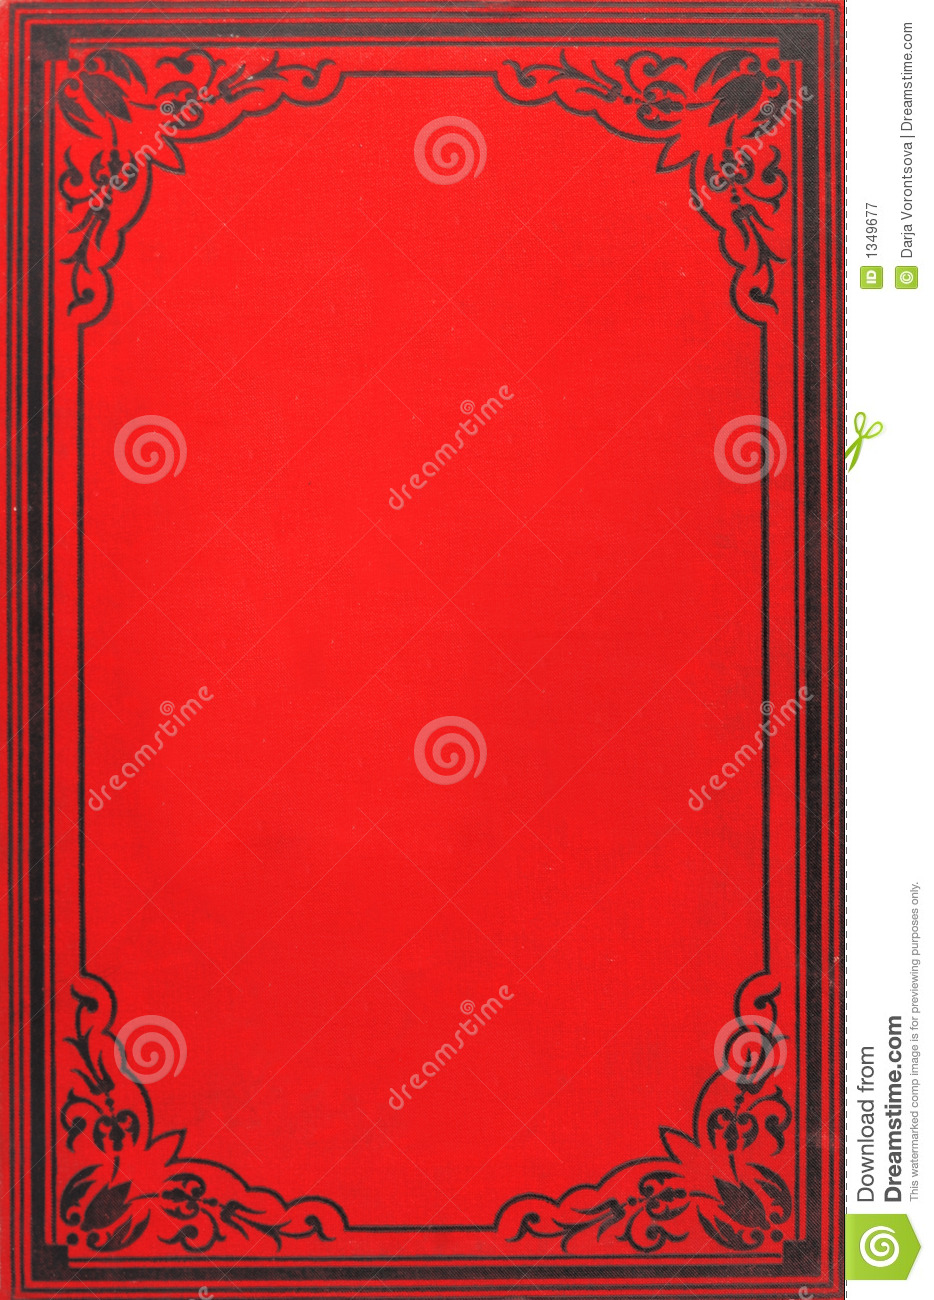 Photography Book Cover Fee : Old book cover royalty free stock photography image